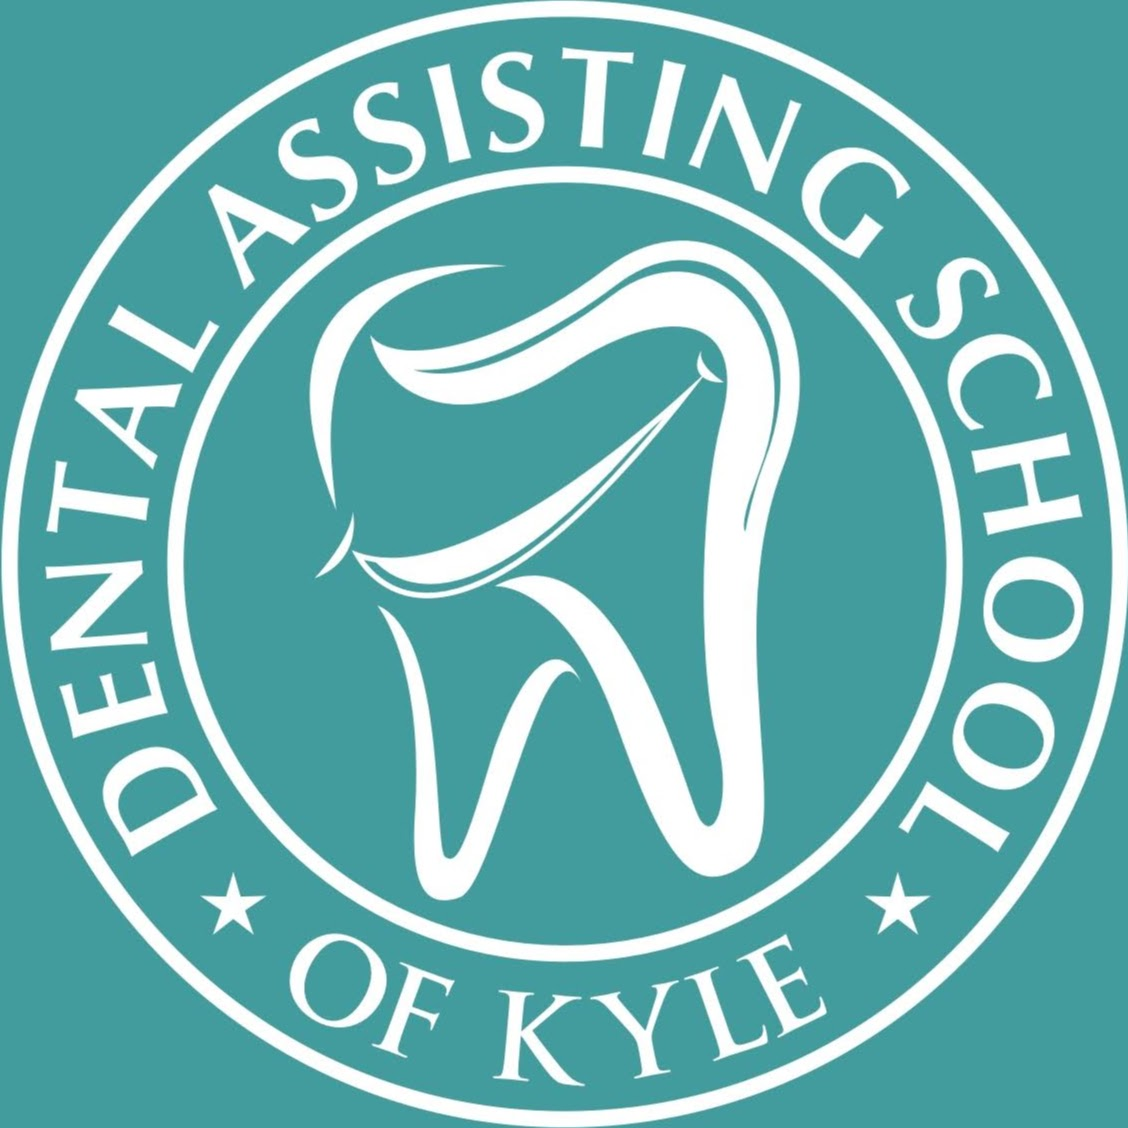 Dental Assisting School of Kyle, a Top-Rated School in Kyle Announces New Services for Texas